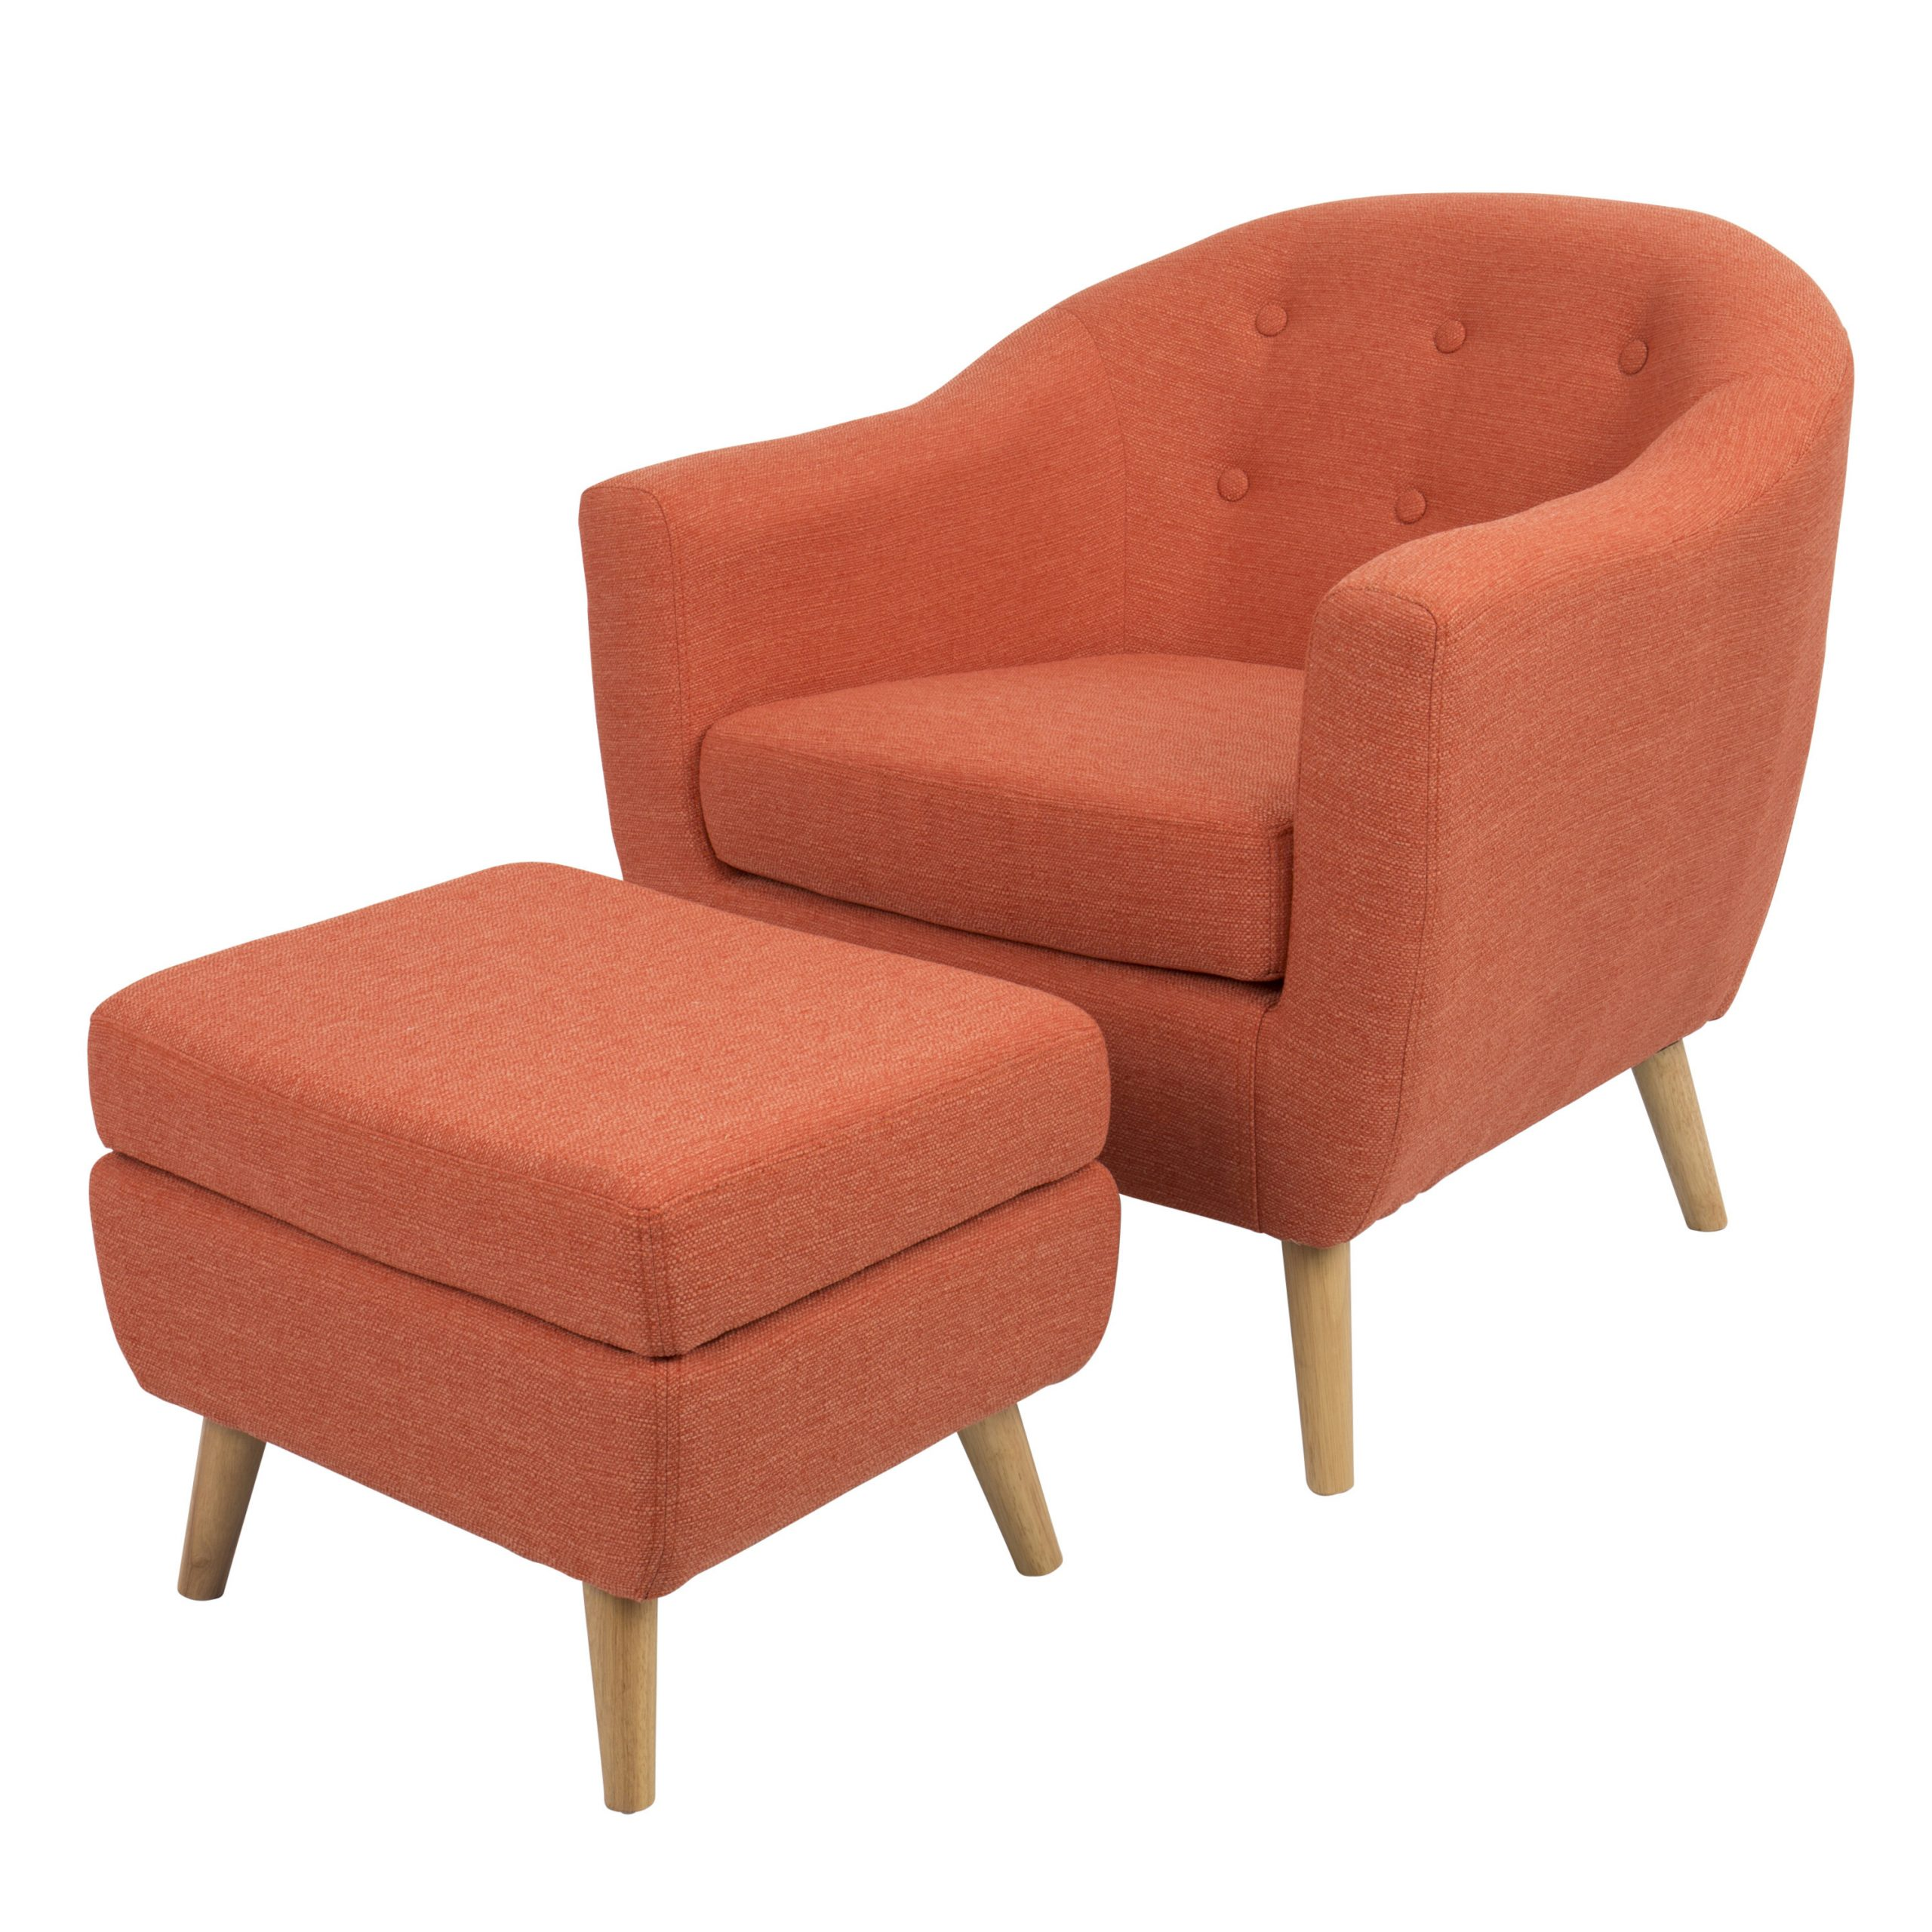 Barrel Mid Century Modern Accent Chairs You'll Love In 2021 With Preferred Claudel Polyester Blend Barrel Chairs (View 4 of 20)